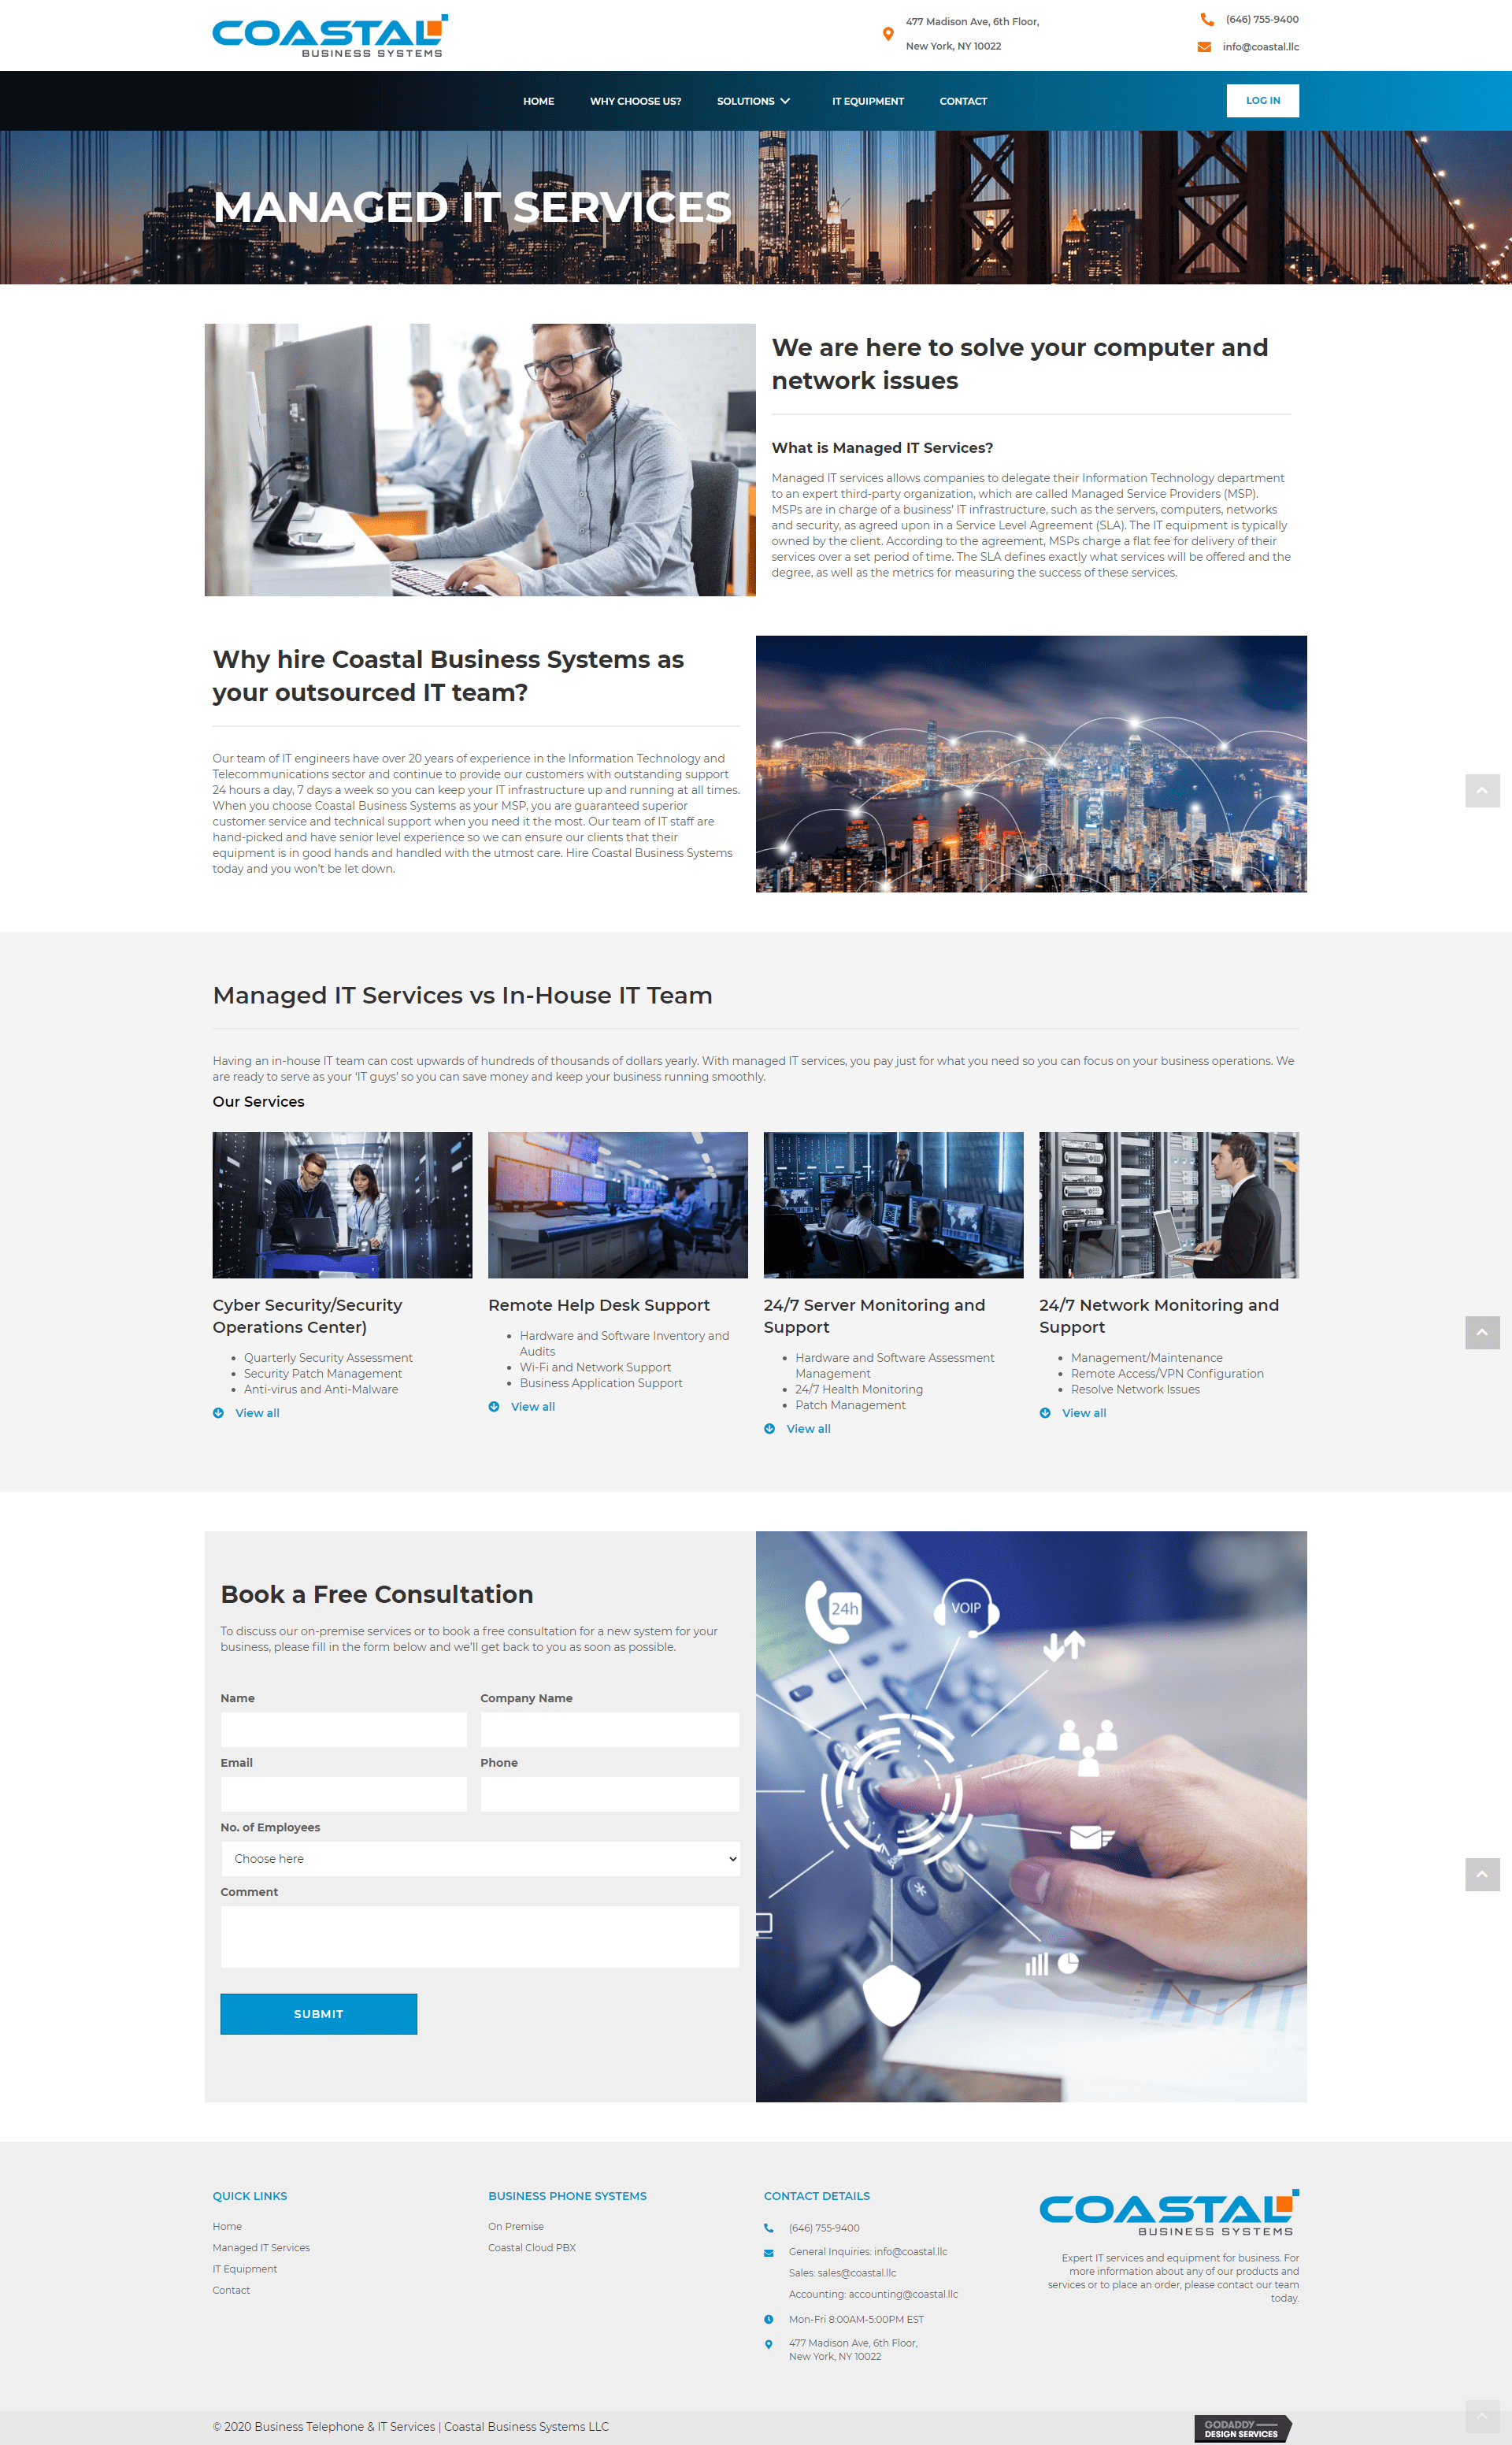 Coastal Business Systems Service - Managed it Services Page